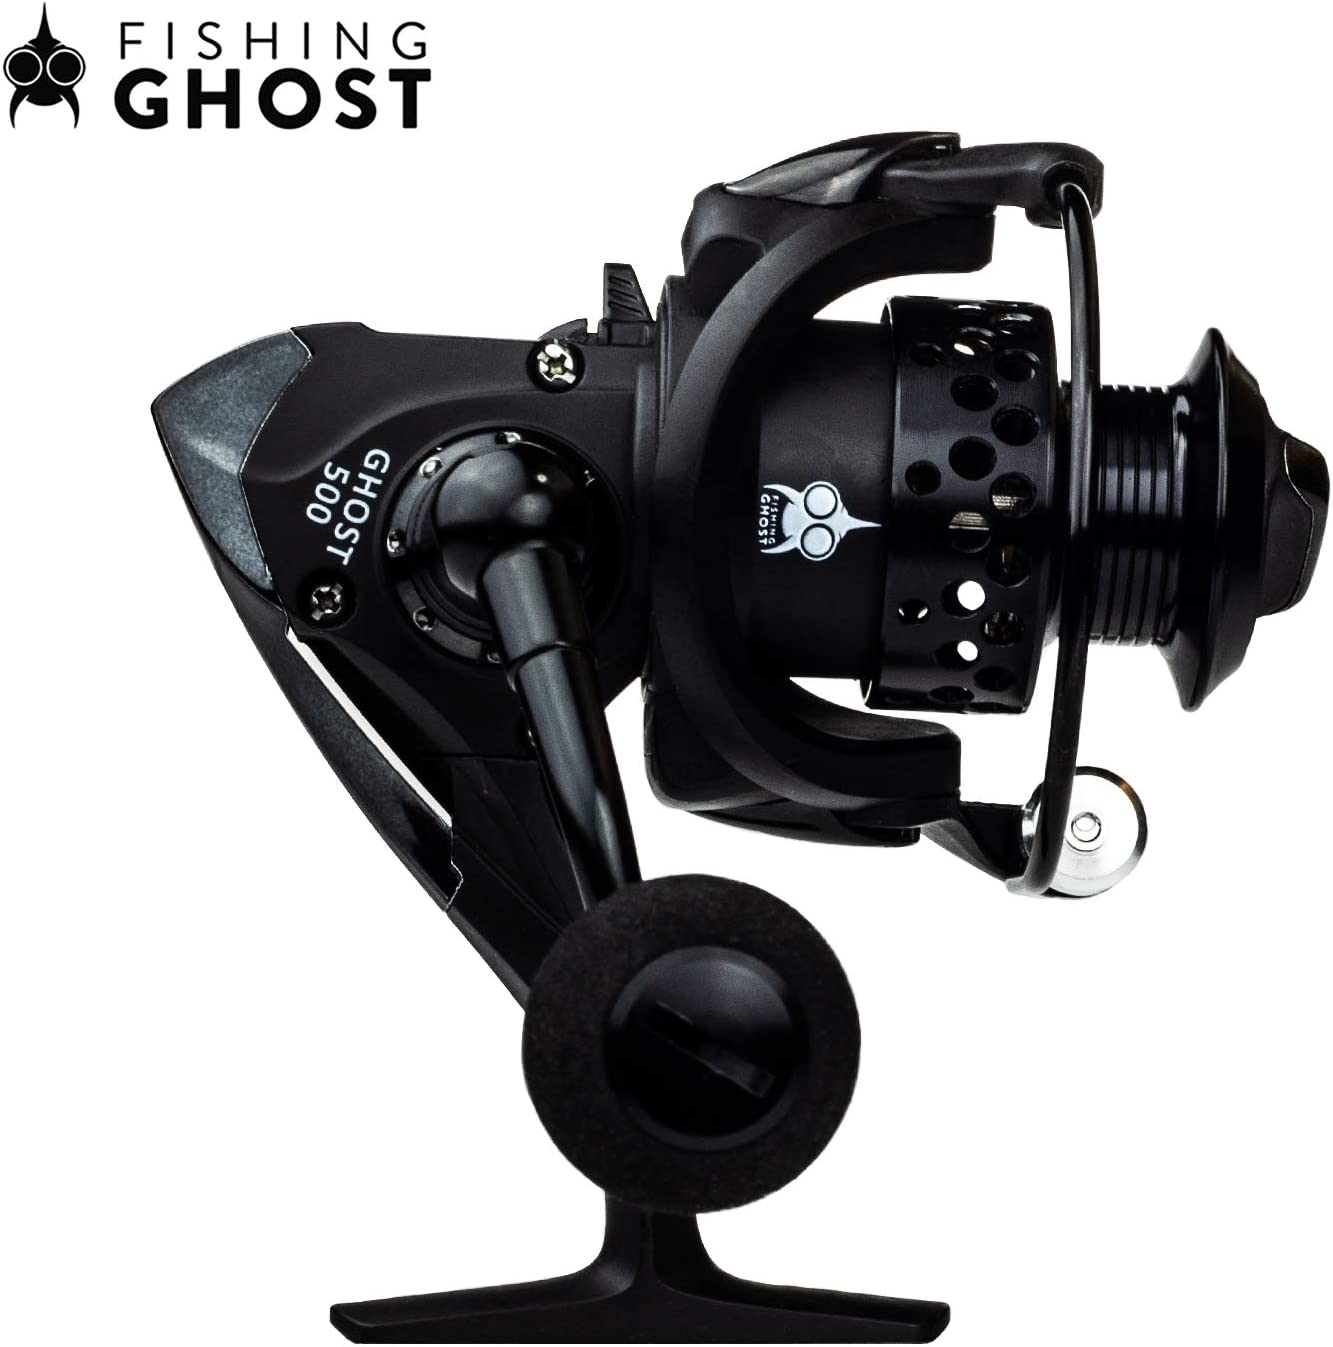 FISHINGGHOST® REEL500 Carrete Angel Spinning de 180gr Ideal para ...